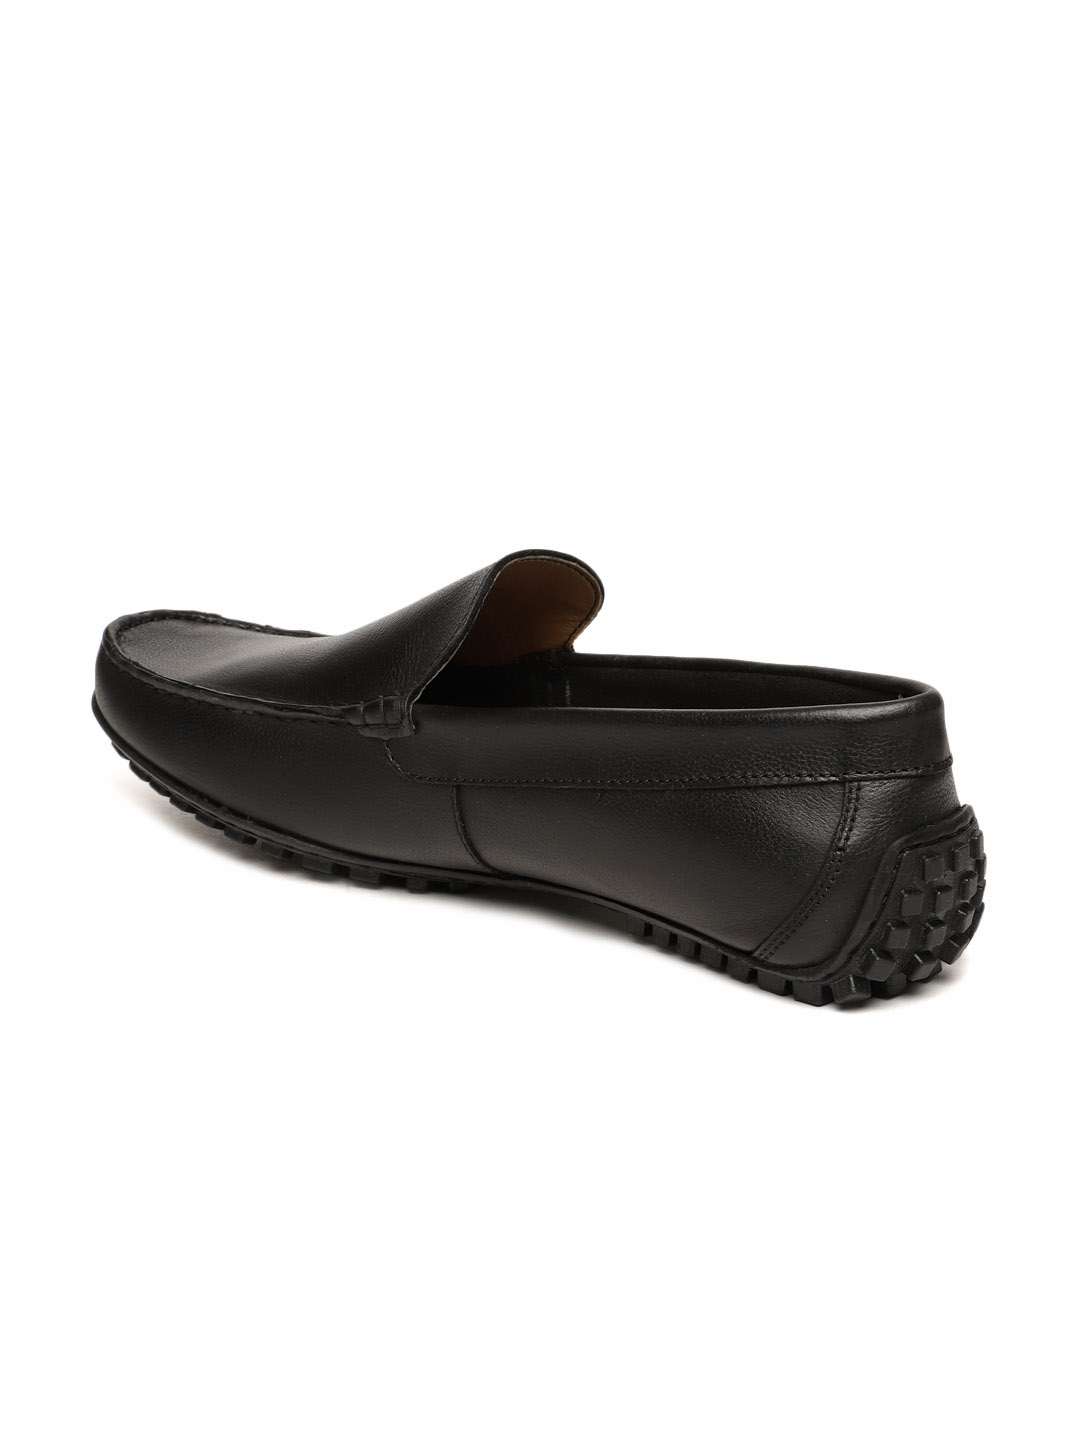 Black Leather Driving Shoes